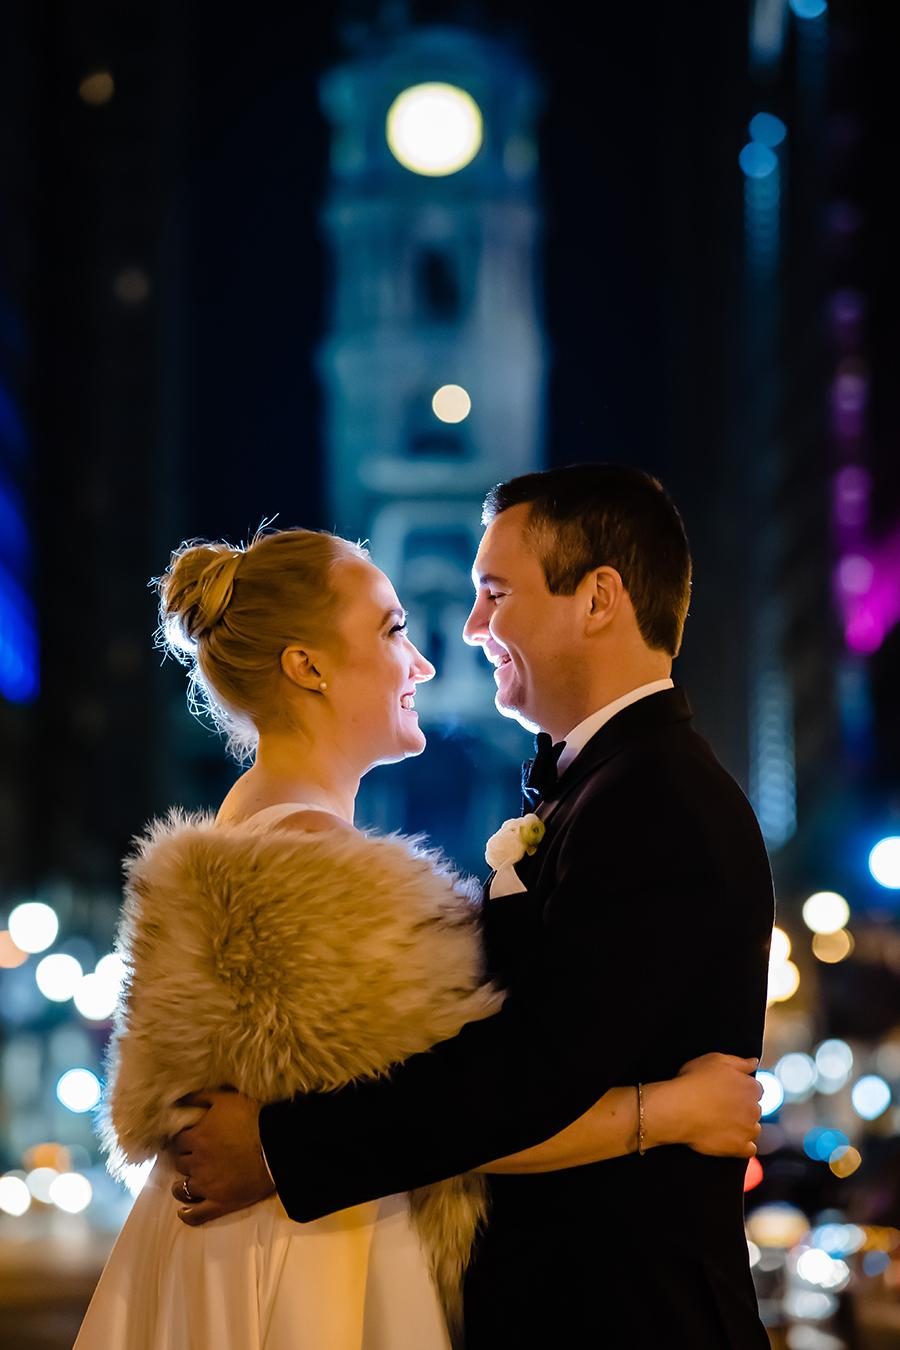 Bride and groom pose facing each other with Philadelphia's City Hall in the background, at night